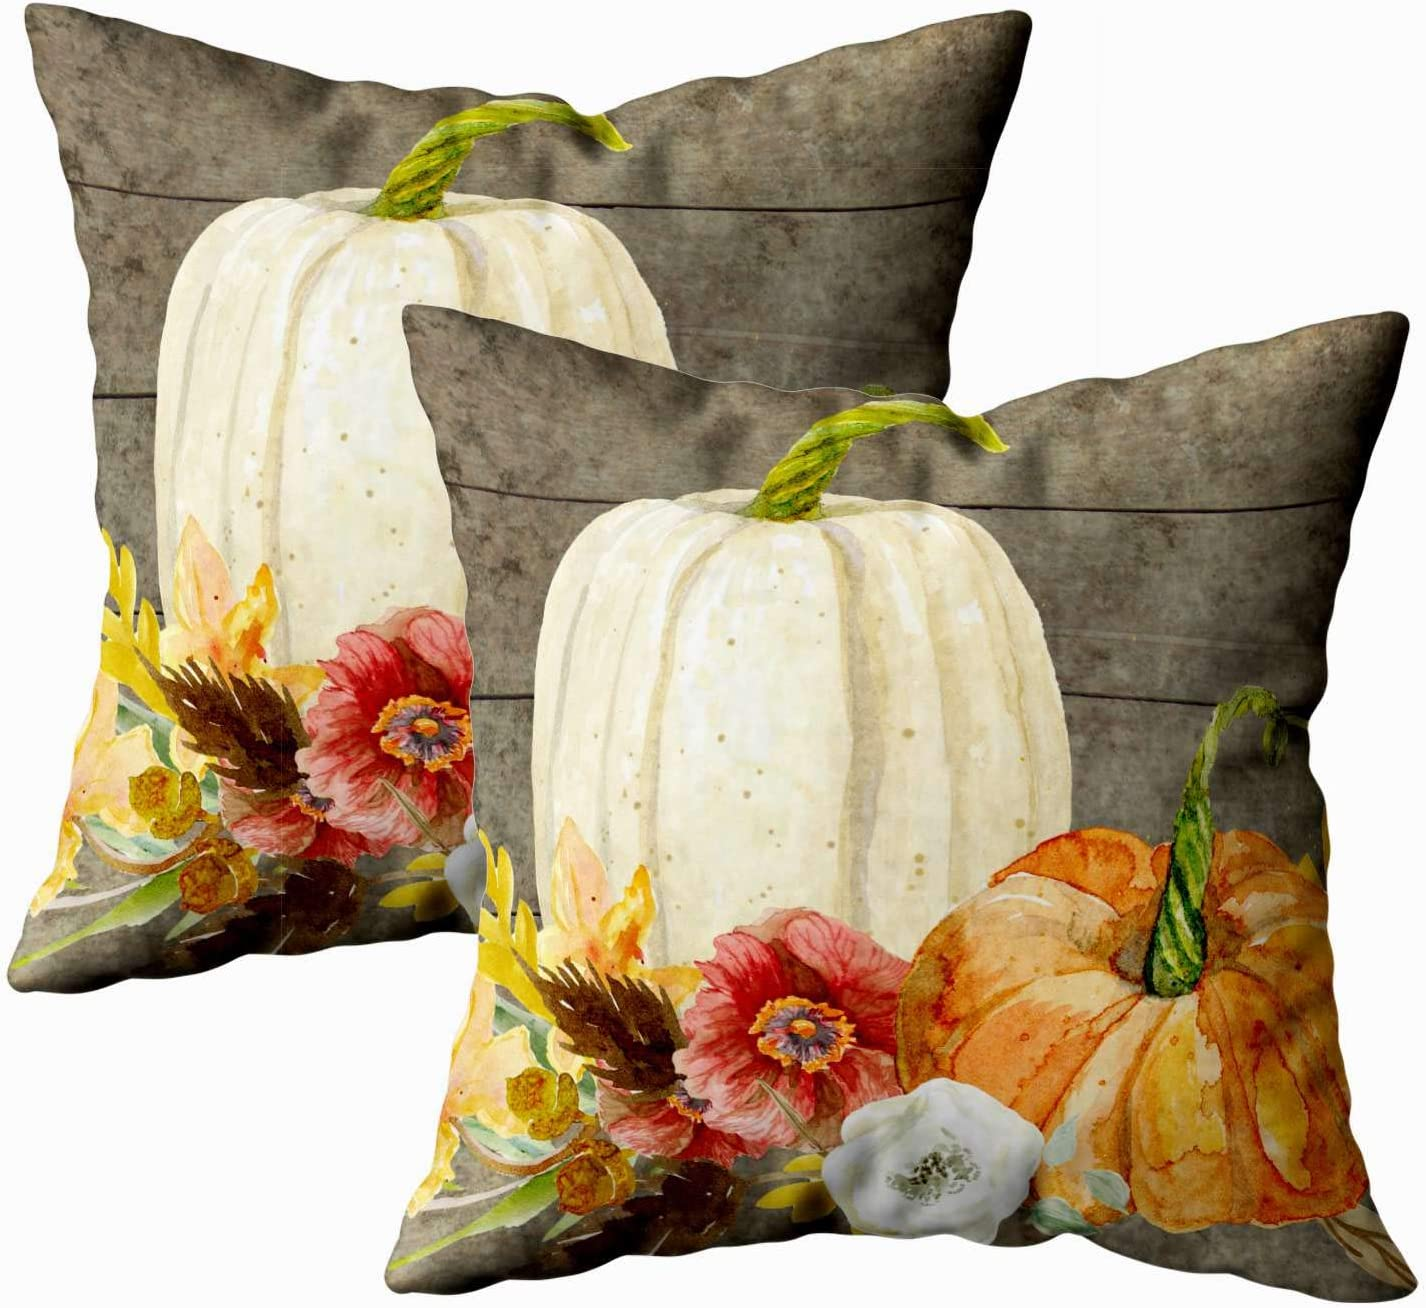 Shorping Sofa Pillow Zippered Pillowcases free Over item handling Thro 20X20Inch Pack 2